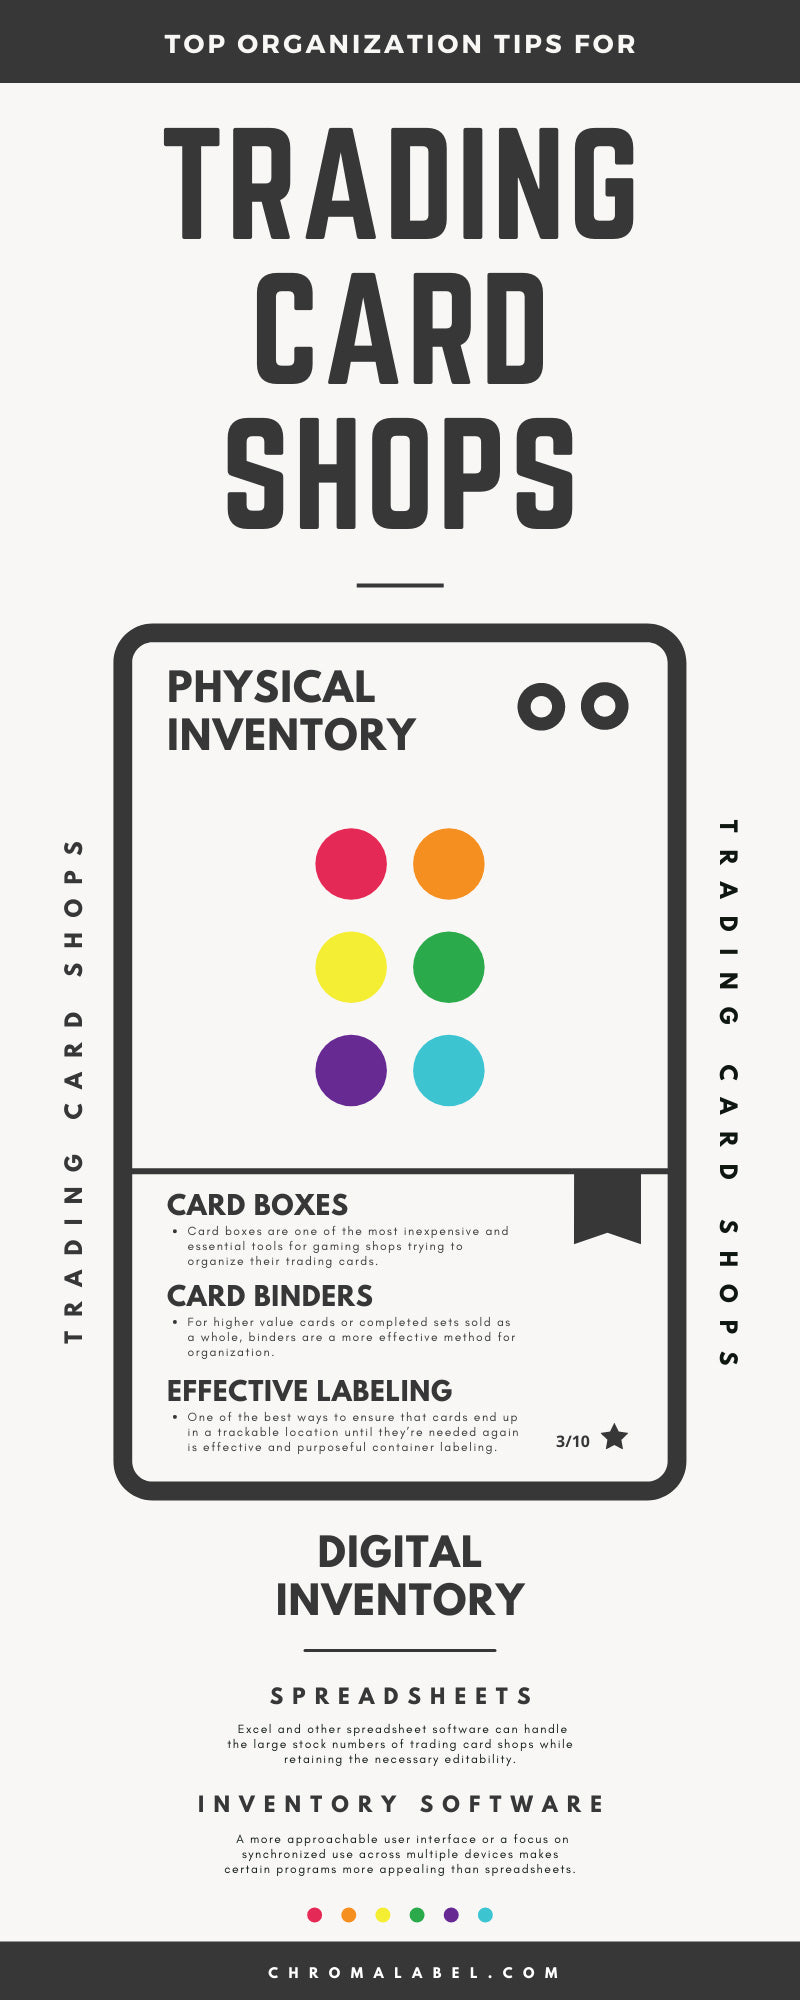 Top Organization Tips for Trading Card Shops